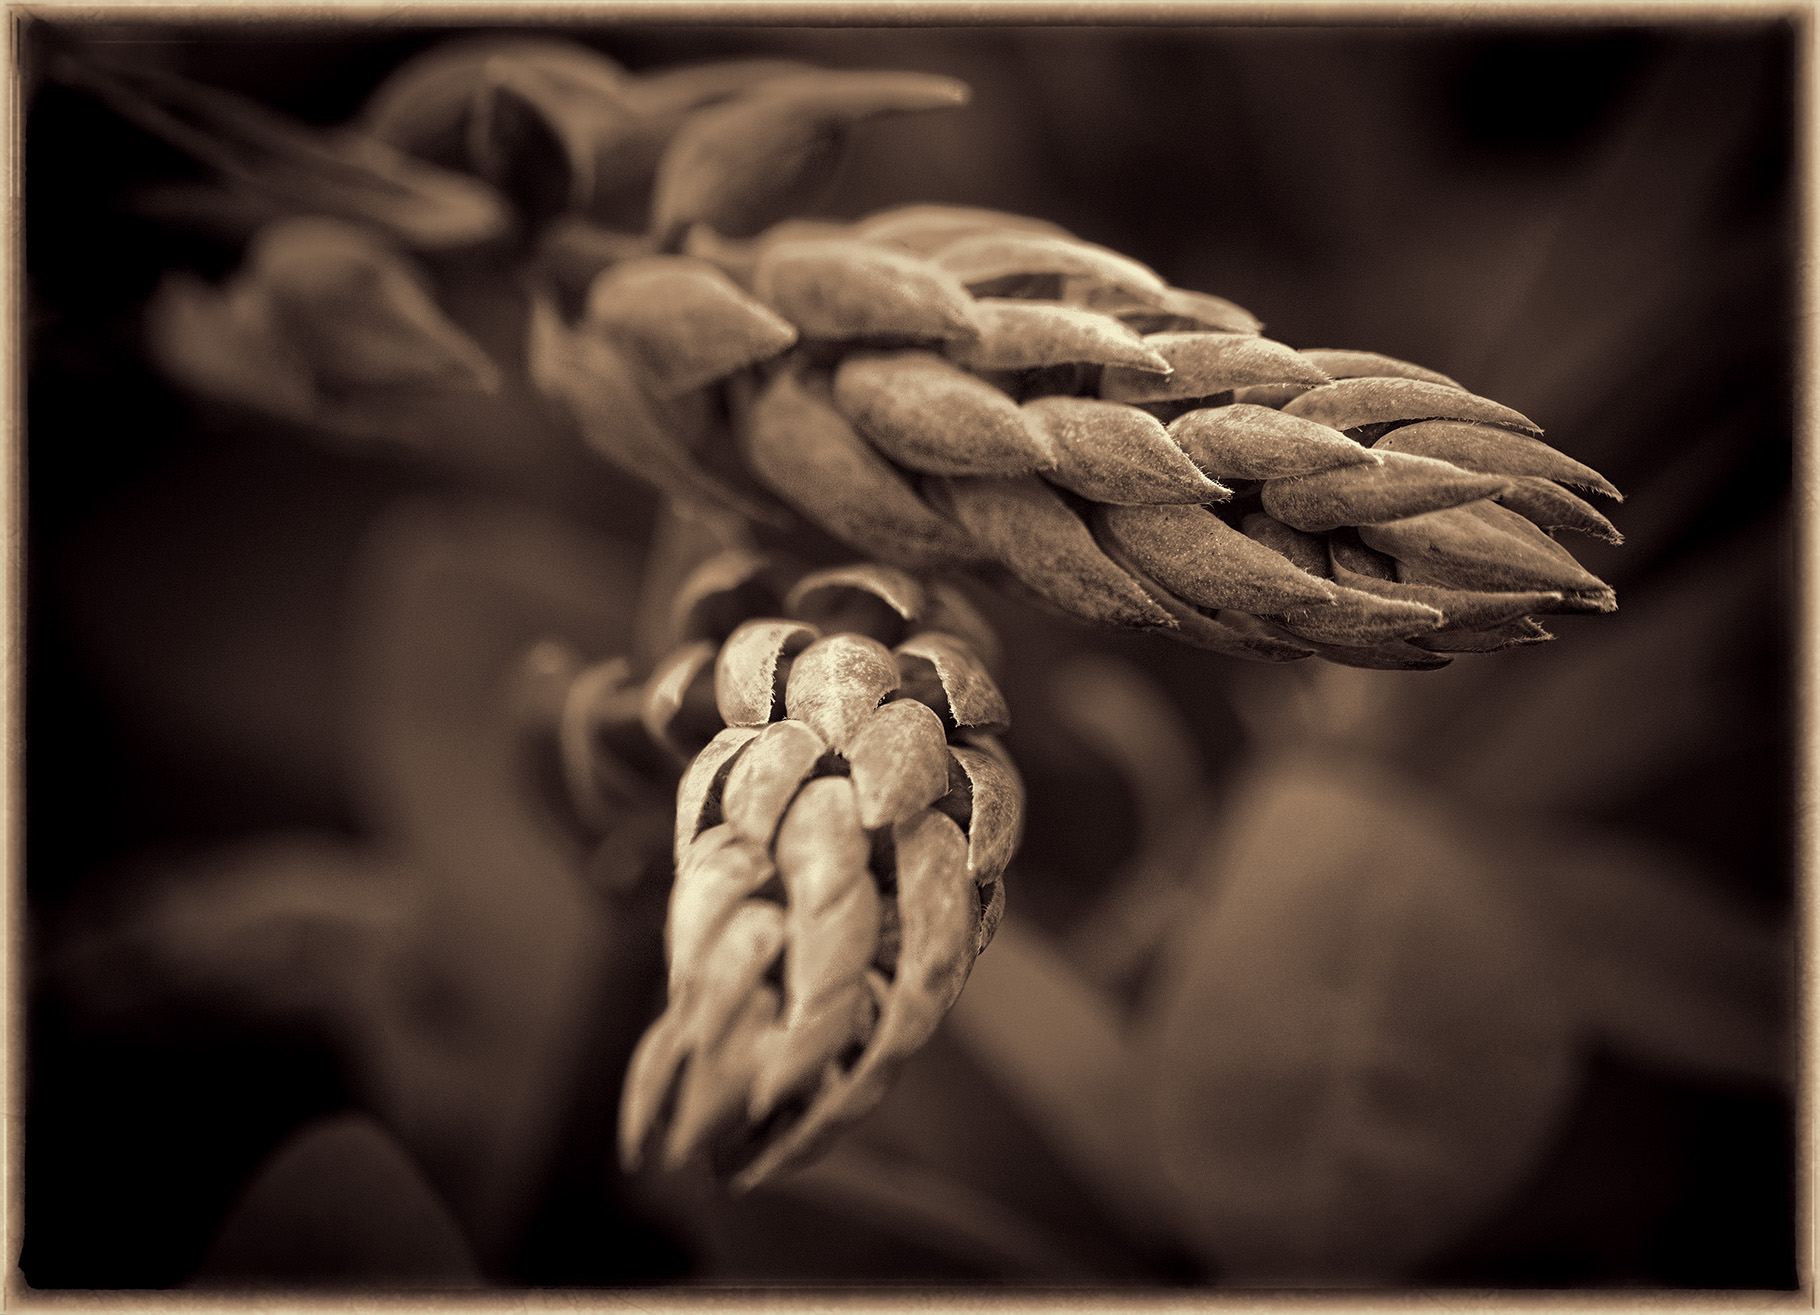 Spring Buds - Digital (Shallow Depth of Field) - Name Withheld Per Request